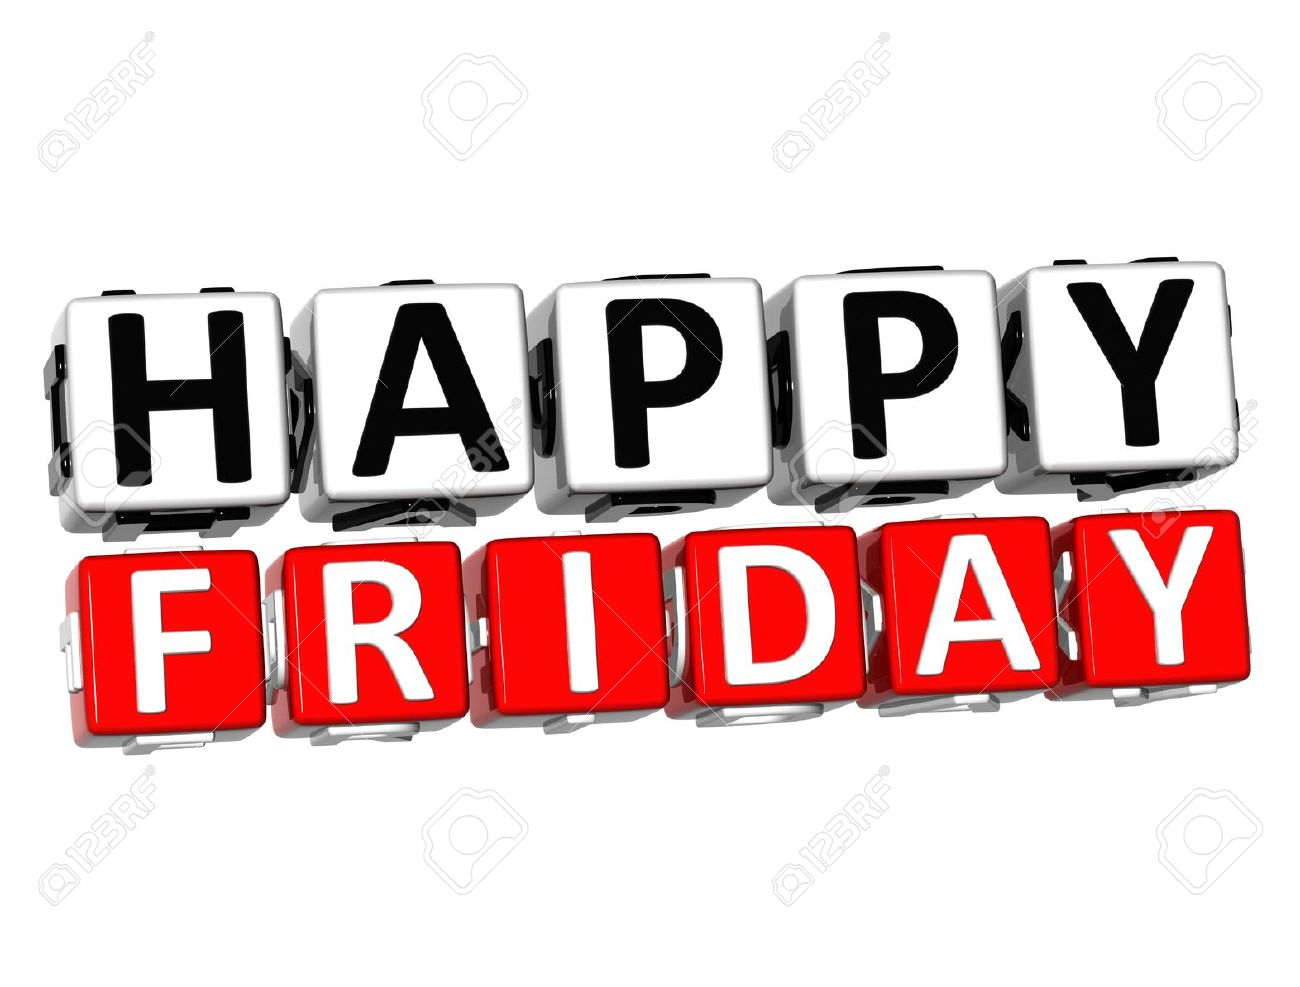 Friday clipart happy friday. Shining ideas clip art